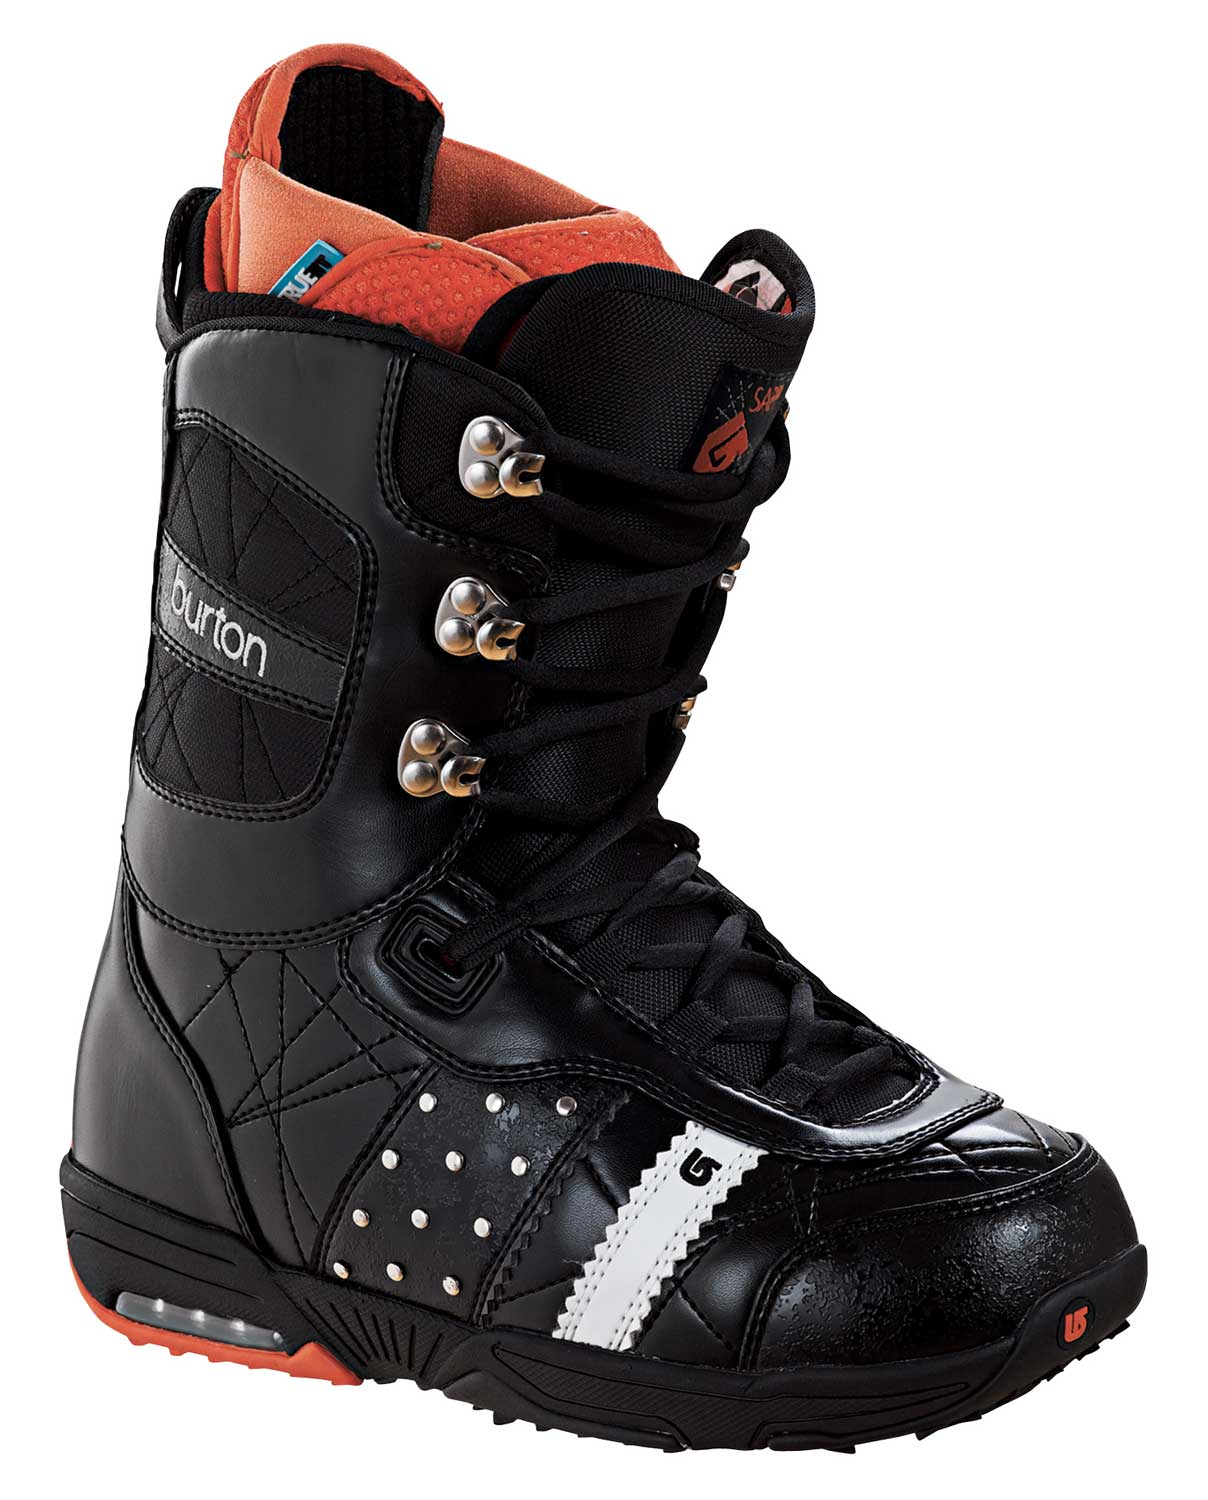 Snowboard The Sapphire combines a smooth flex with skate-shoe comfort, cushioning, and style to create that freestyle feel you have been searching for. So slip 'em on and you will see why pros like Natasza Zurek, Elena Hight and Molly Aguirre refuse to ride anything else.Key Features of The Burton Sapphire Women's Snowboard Boots.: Lacing: 2:1 Power Lacing Support: 4 Liner: Imprint3 Liner with True Fit Design, TaiPanel, EZ Entry Liner System, Plush Cuff, Power Panel 2.0, Supercuff with J-Bar Adjustable Heel Hold System and Aegis Antimicrobial Coating Cushioning: Lightweight Outsole with Air Cushioning Flex and Response: Softer Flexing Shell Materials, Articulating Cuff, Flex Spine 2.0 Backstay and Medium Flex Thin Profile 3D Molded Tongue Comfort: Molded EVA Footbed with ESS Support Shank, OUTLAST Adaptive Comfort Technology and Aegis - $69.95